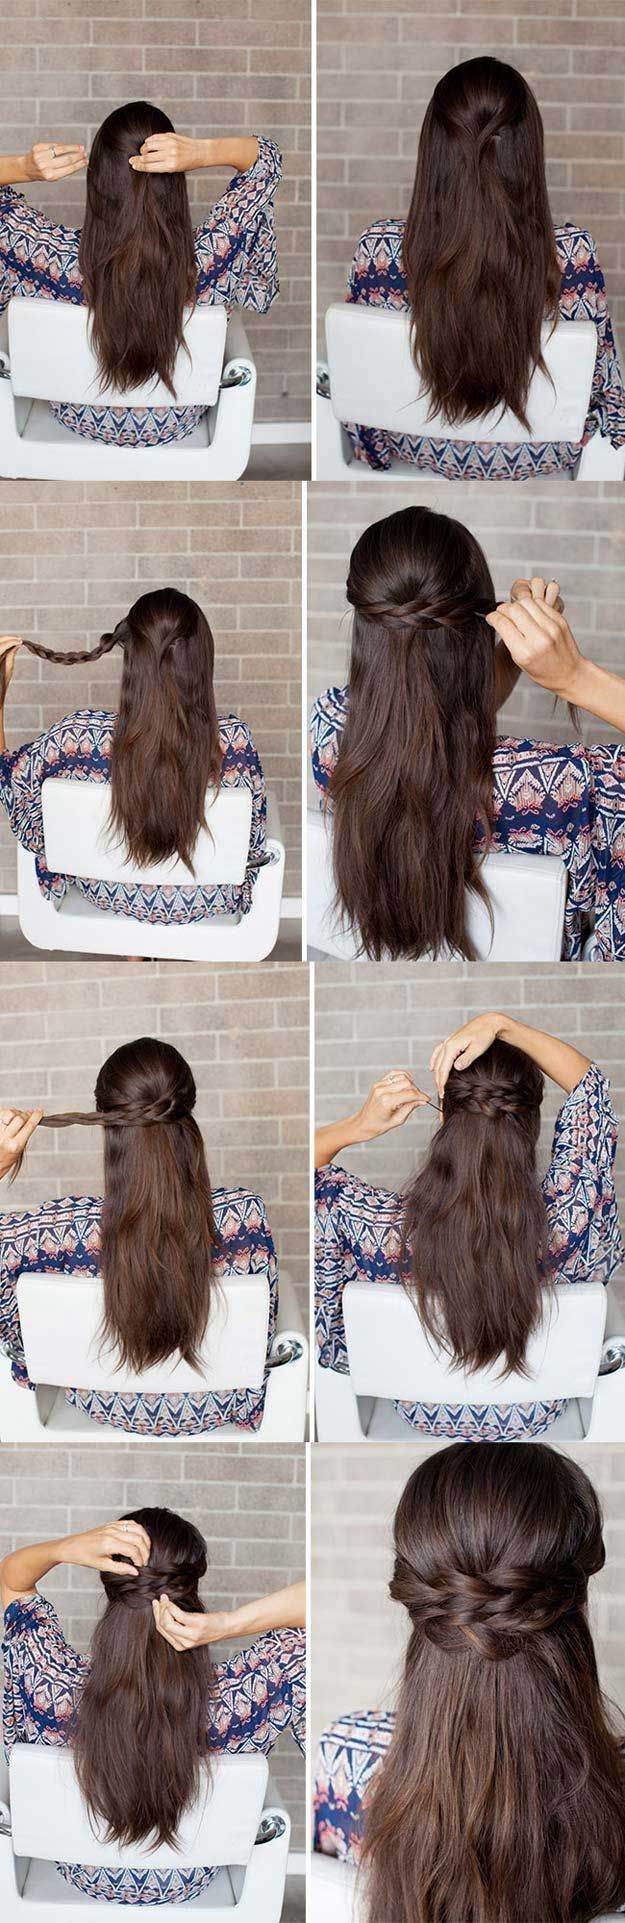 Photo of Amazing Half Up-Half Down Hairstyles For Long Hair – Braided Half-Up How-to – Ea…